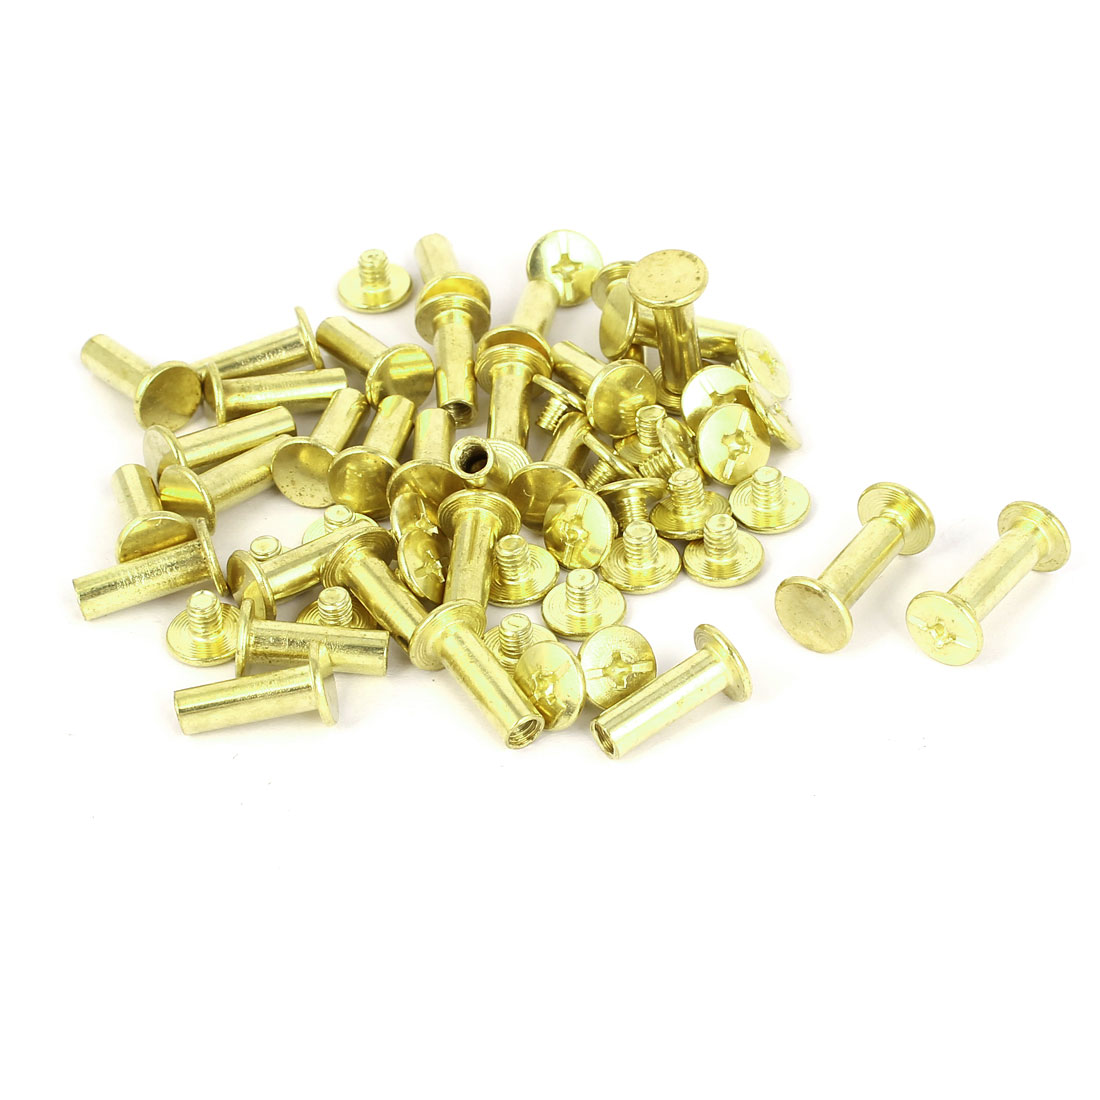 Brass Plated Chicago Screws Binding Posts Docking Rivet 5mmx15mm 30pcs